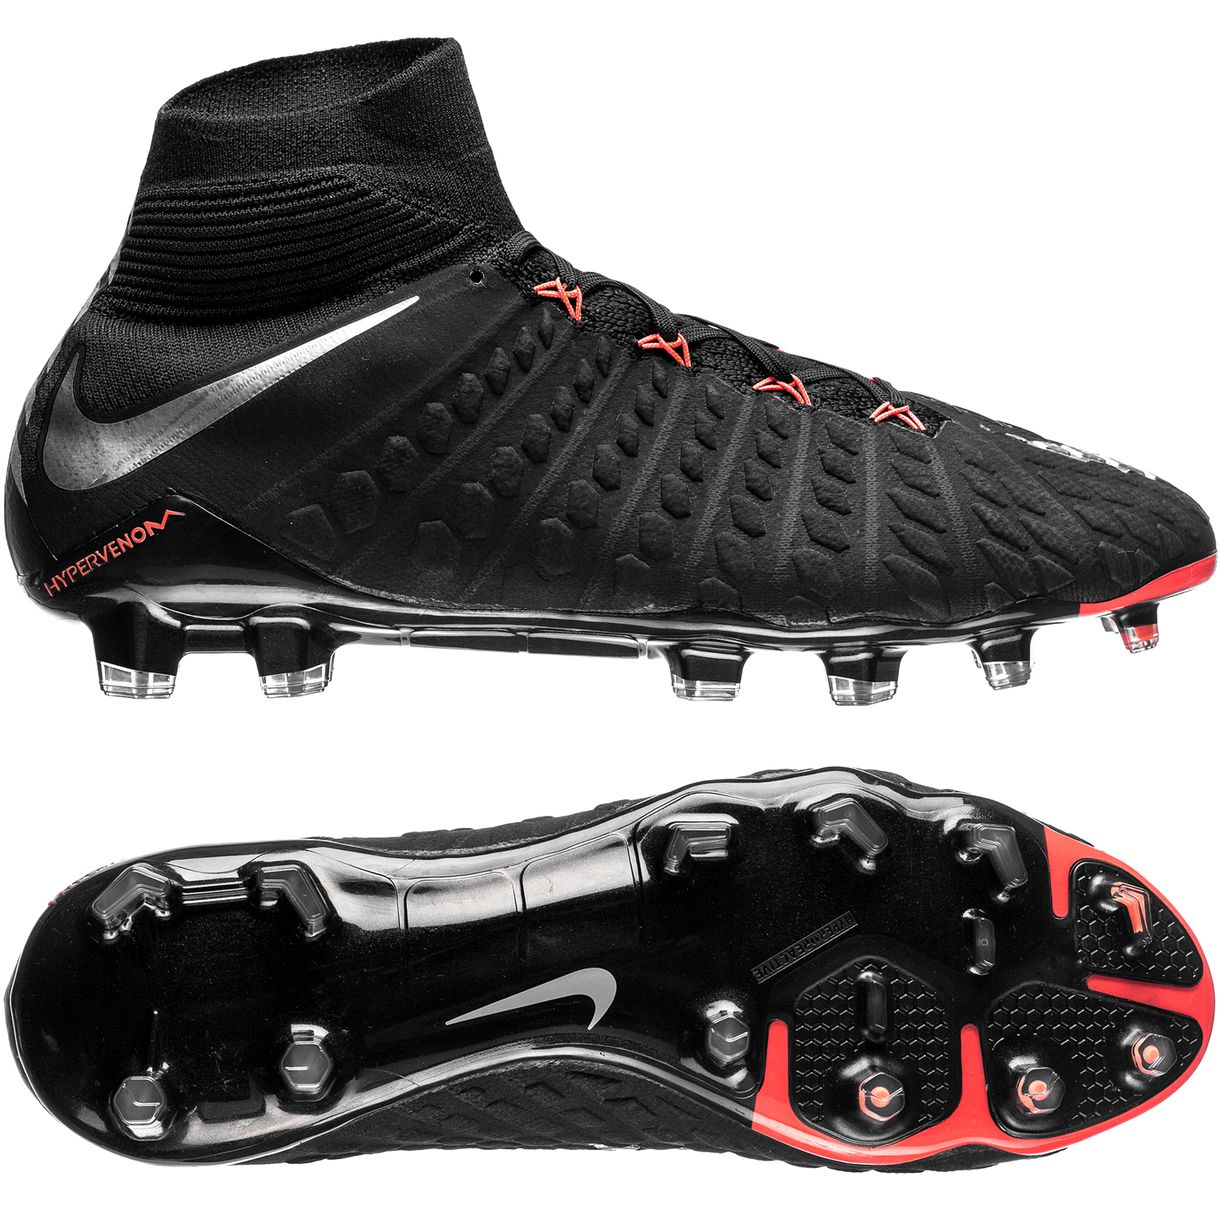 Football Shoes Online Store